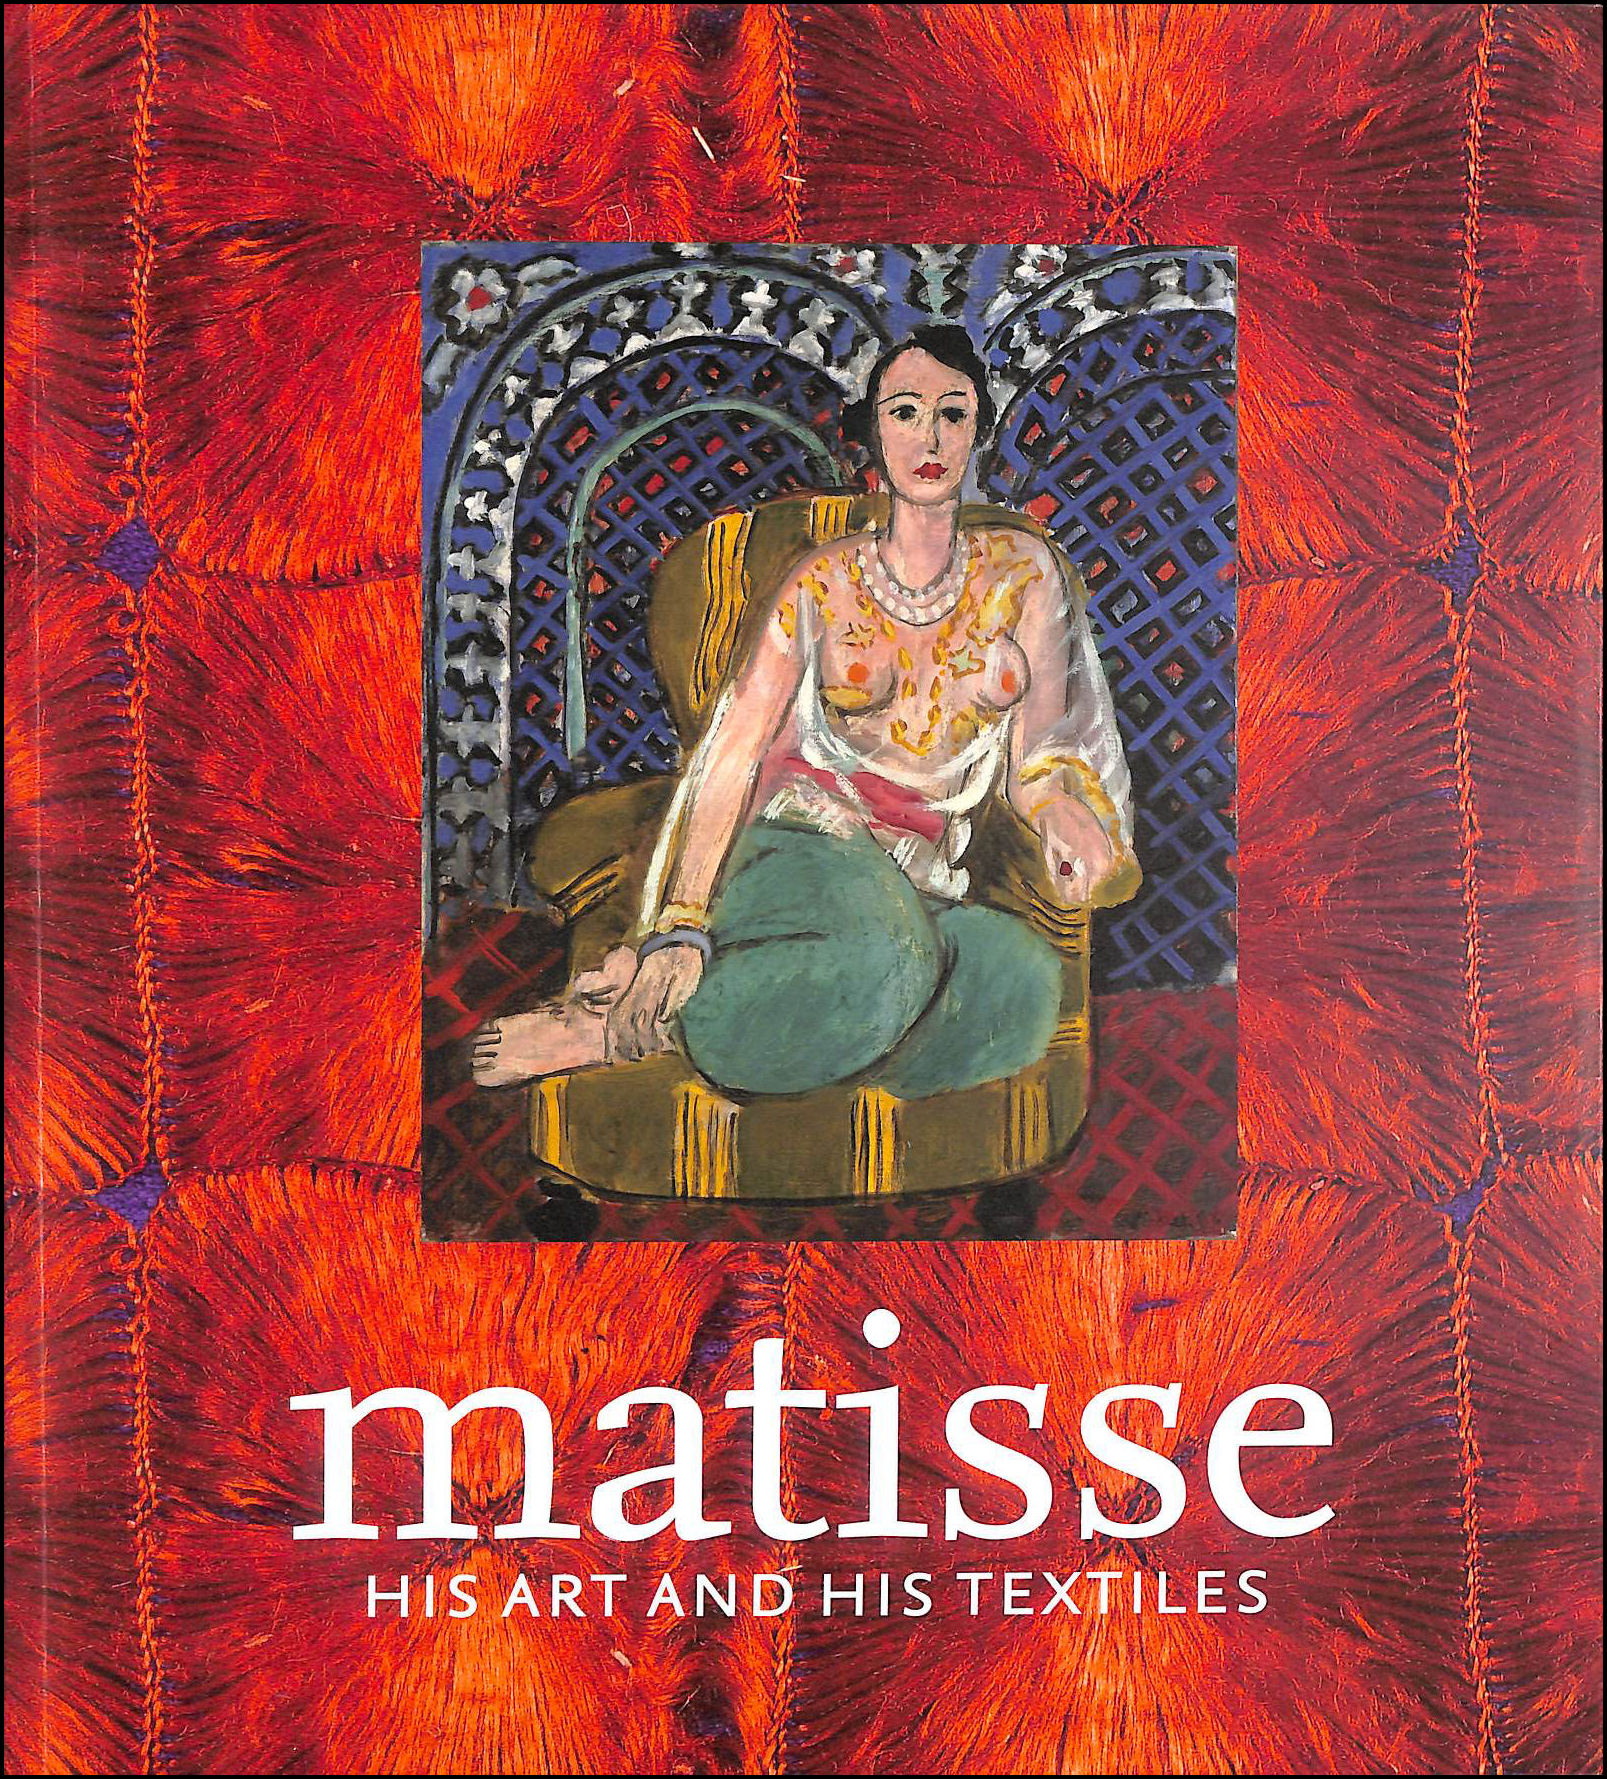 Matisse, His Art And His Textiles: The Fabric Of Dreams (Paperback), Hilary Spurling; Kathleen Brunner; Ann Dumas; Jack Flam; Remi Labrusse; Dominiq